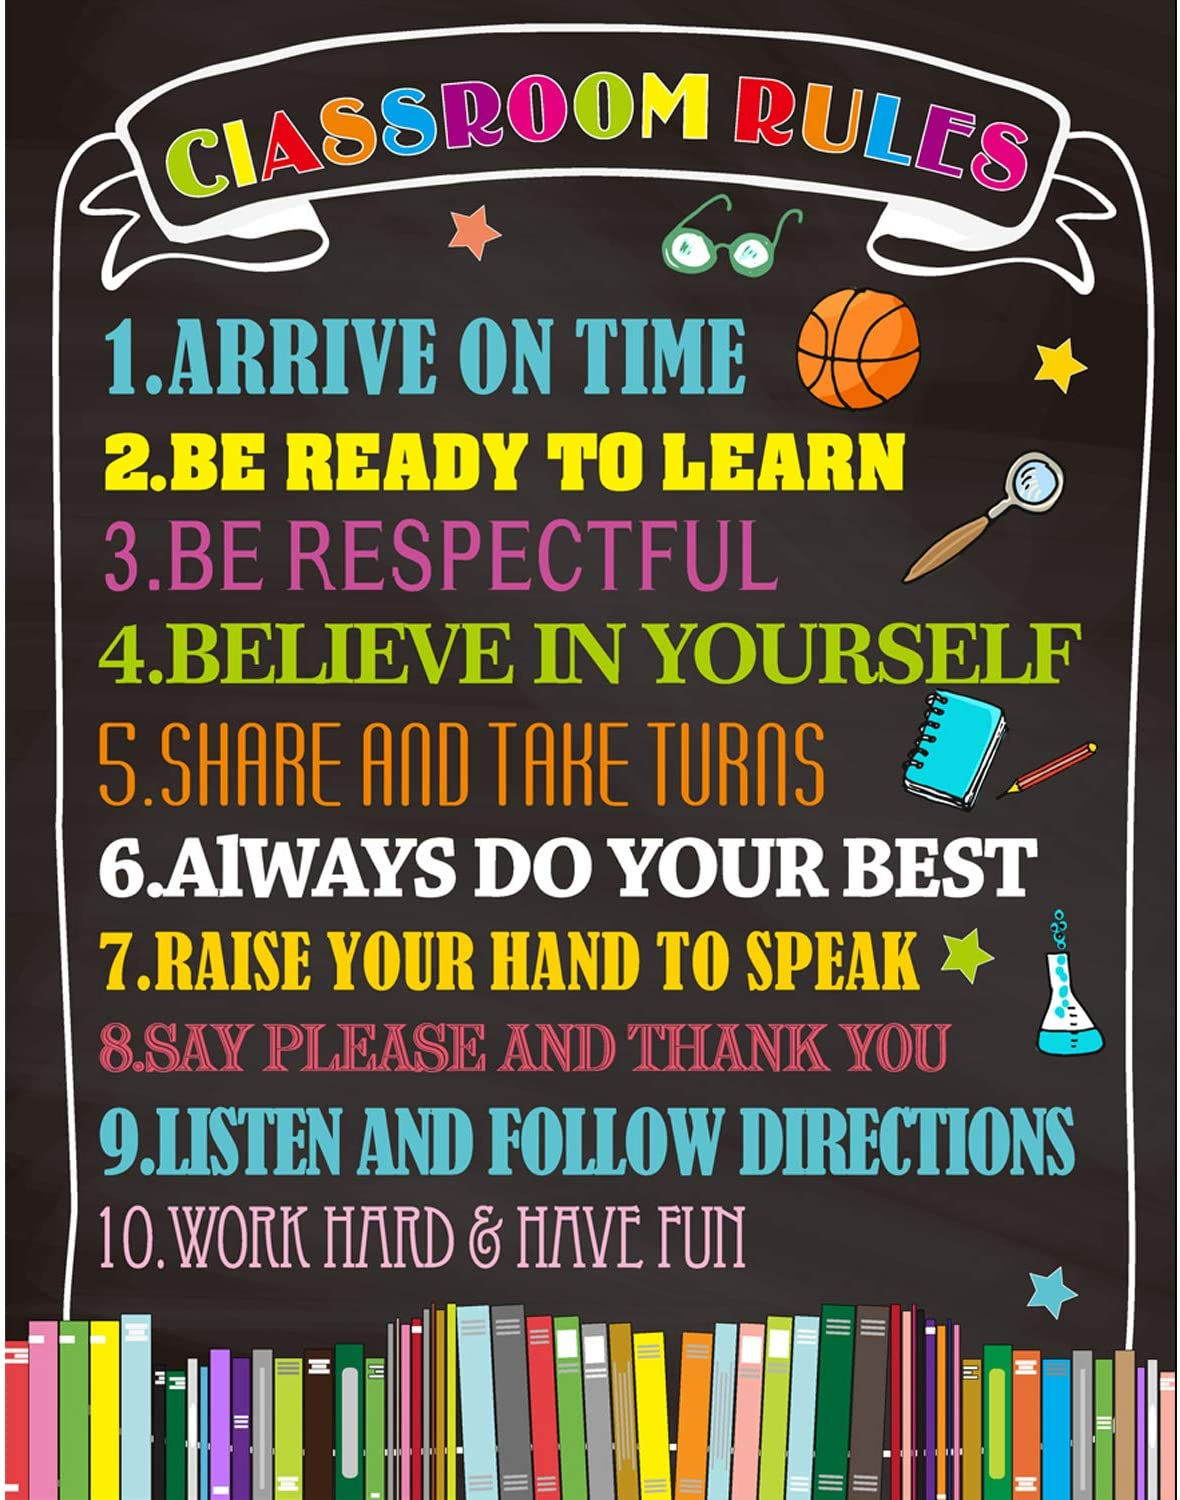 Classroom Rules Poster Back to School Classroom Decorations 11 X 14 for Preschool Middle High School Classroom Decor